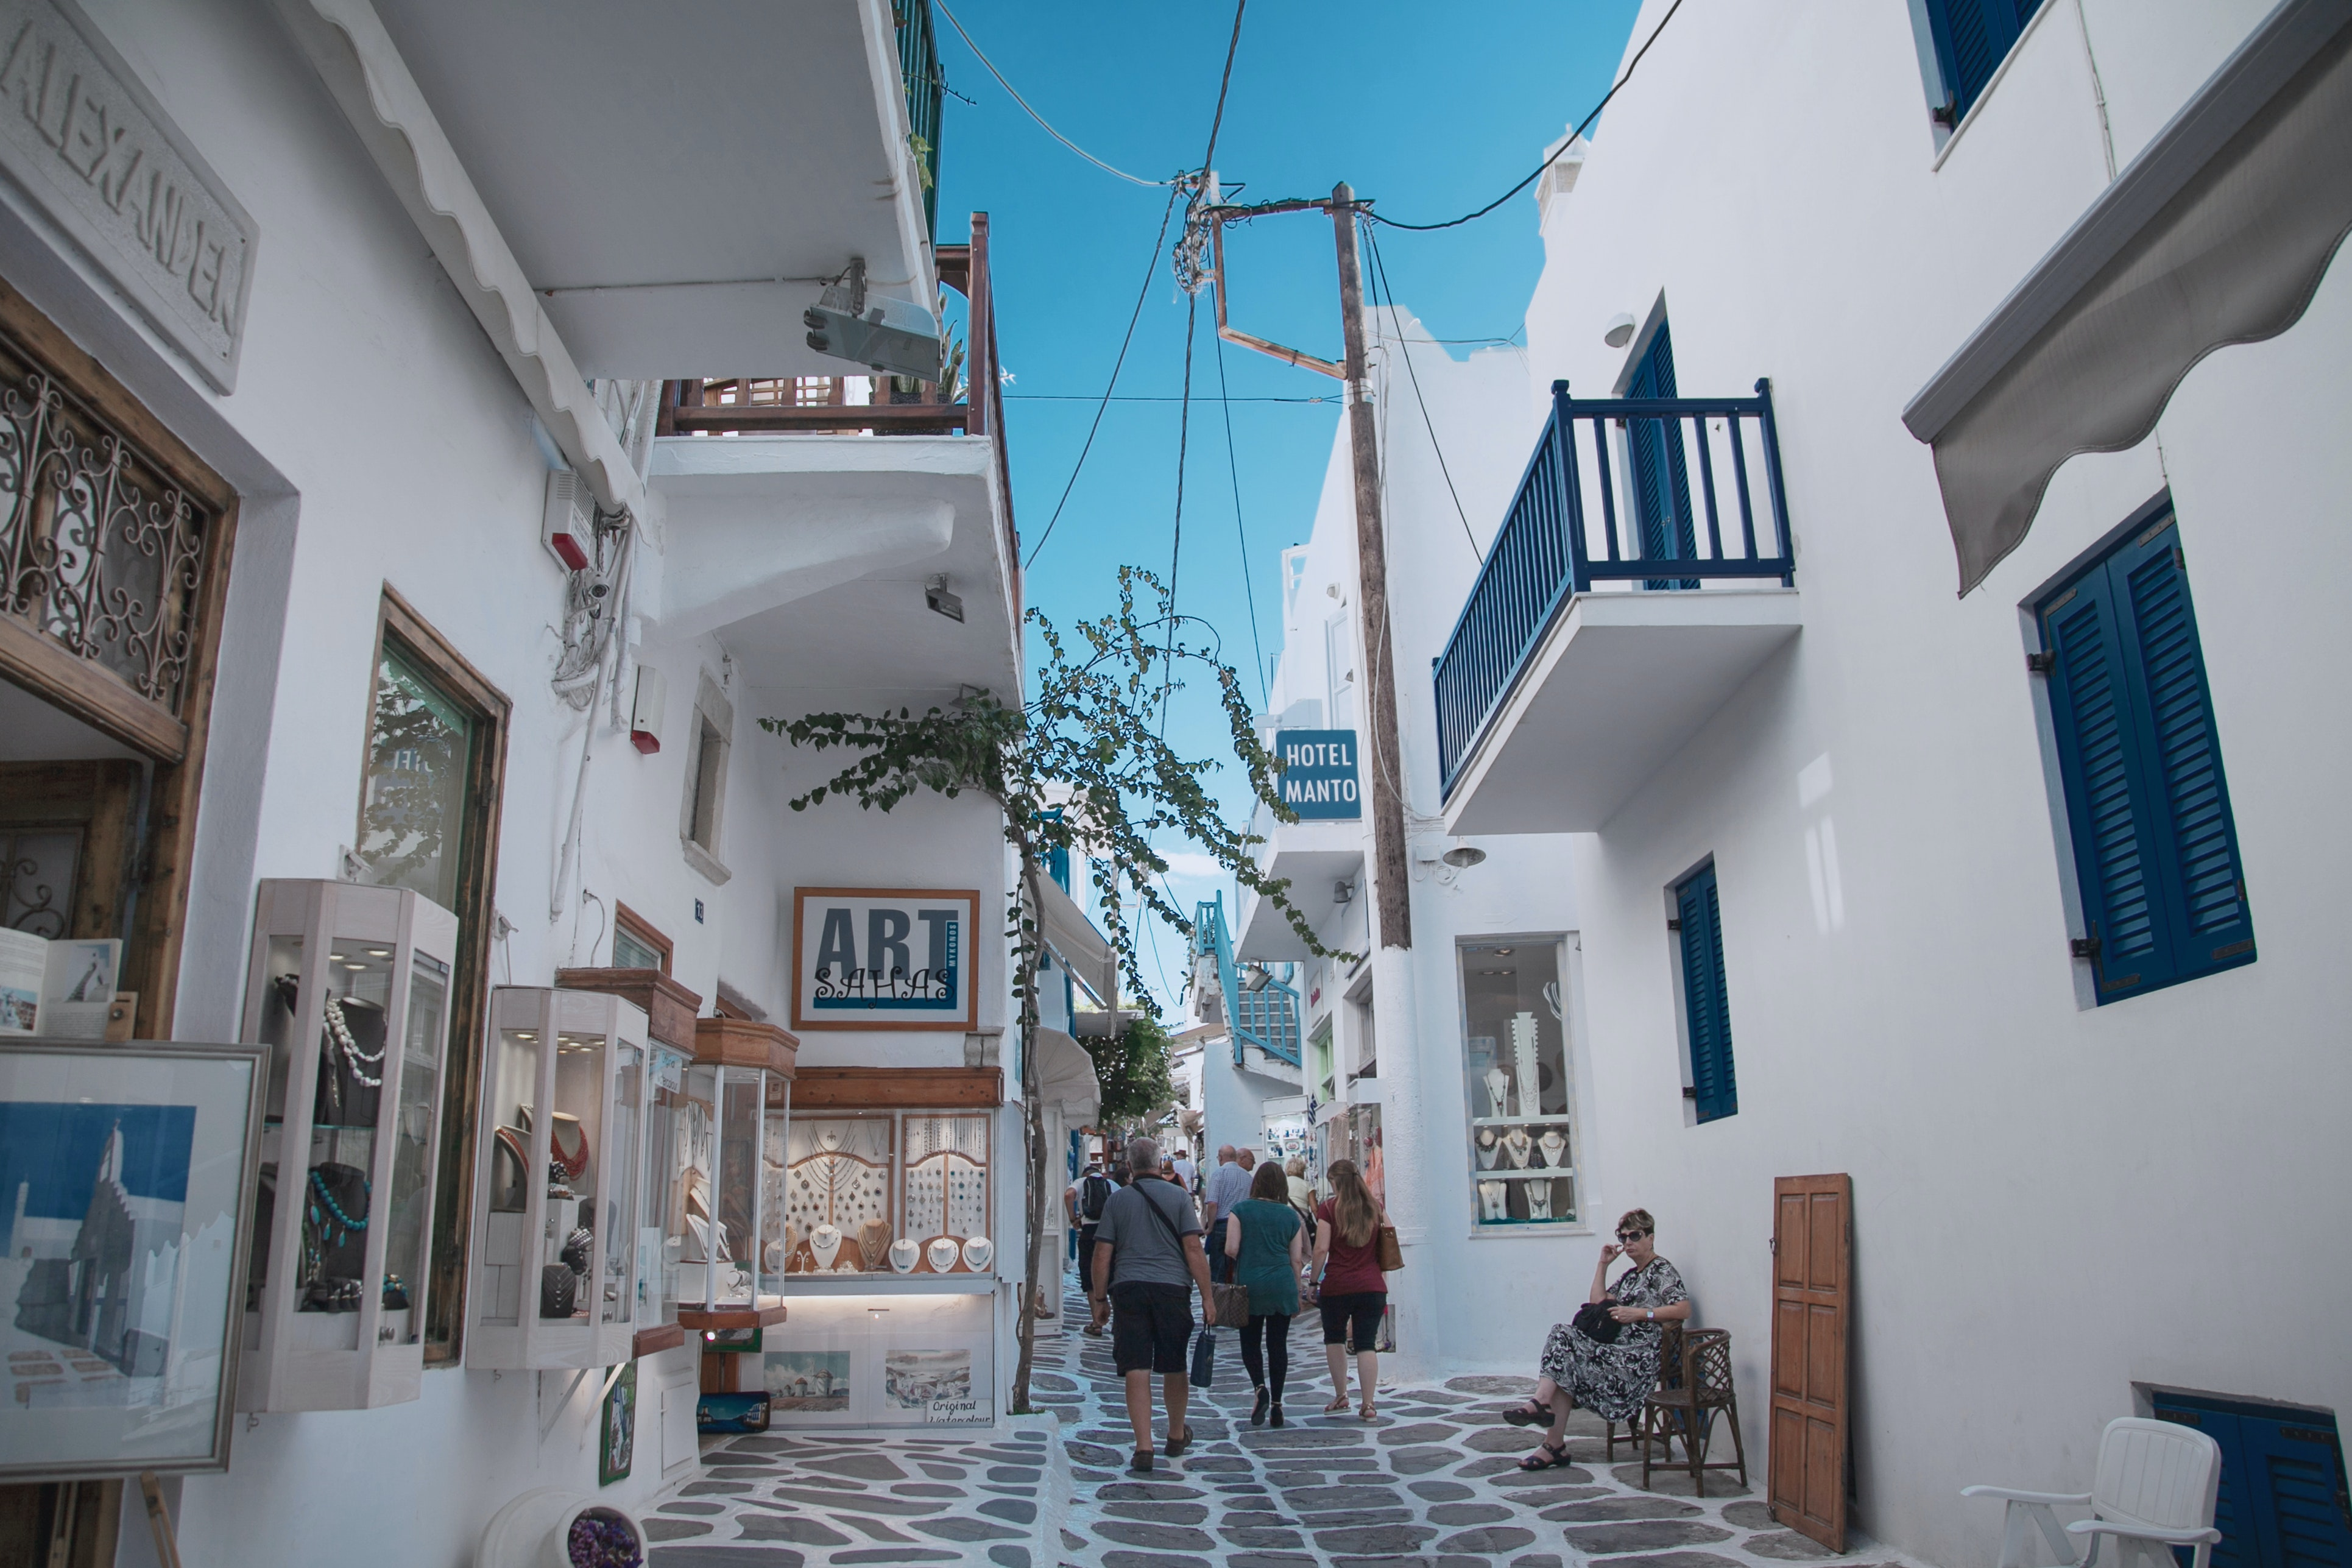 Mykonos- The Island of the Winds